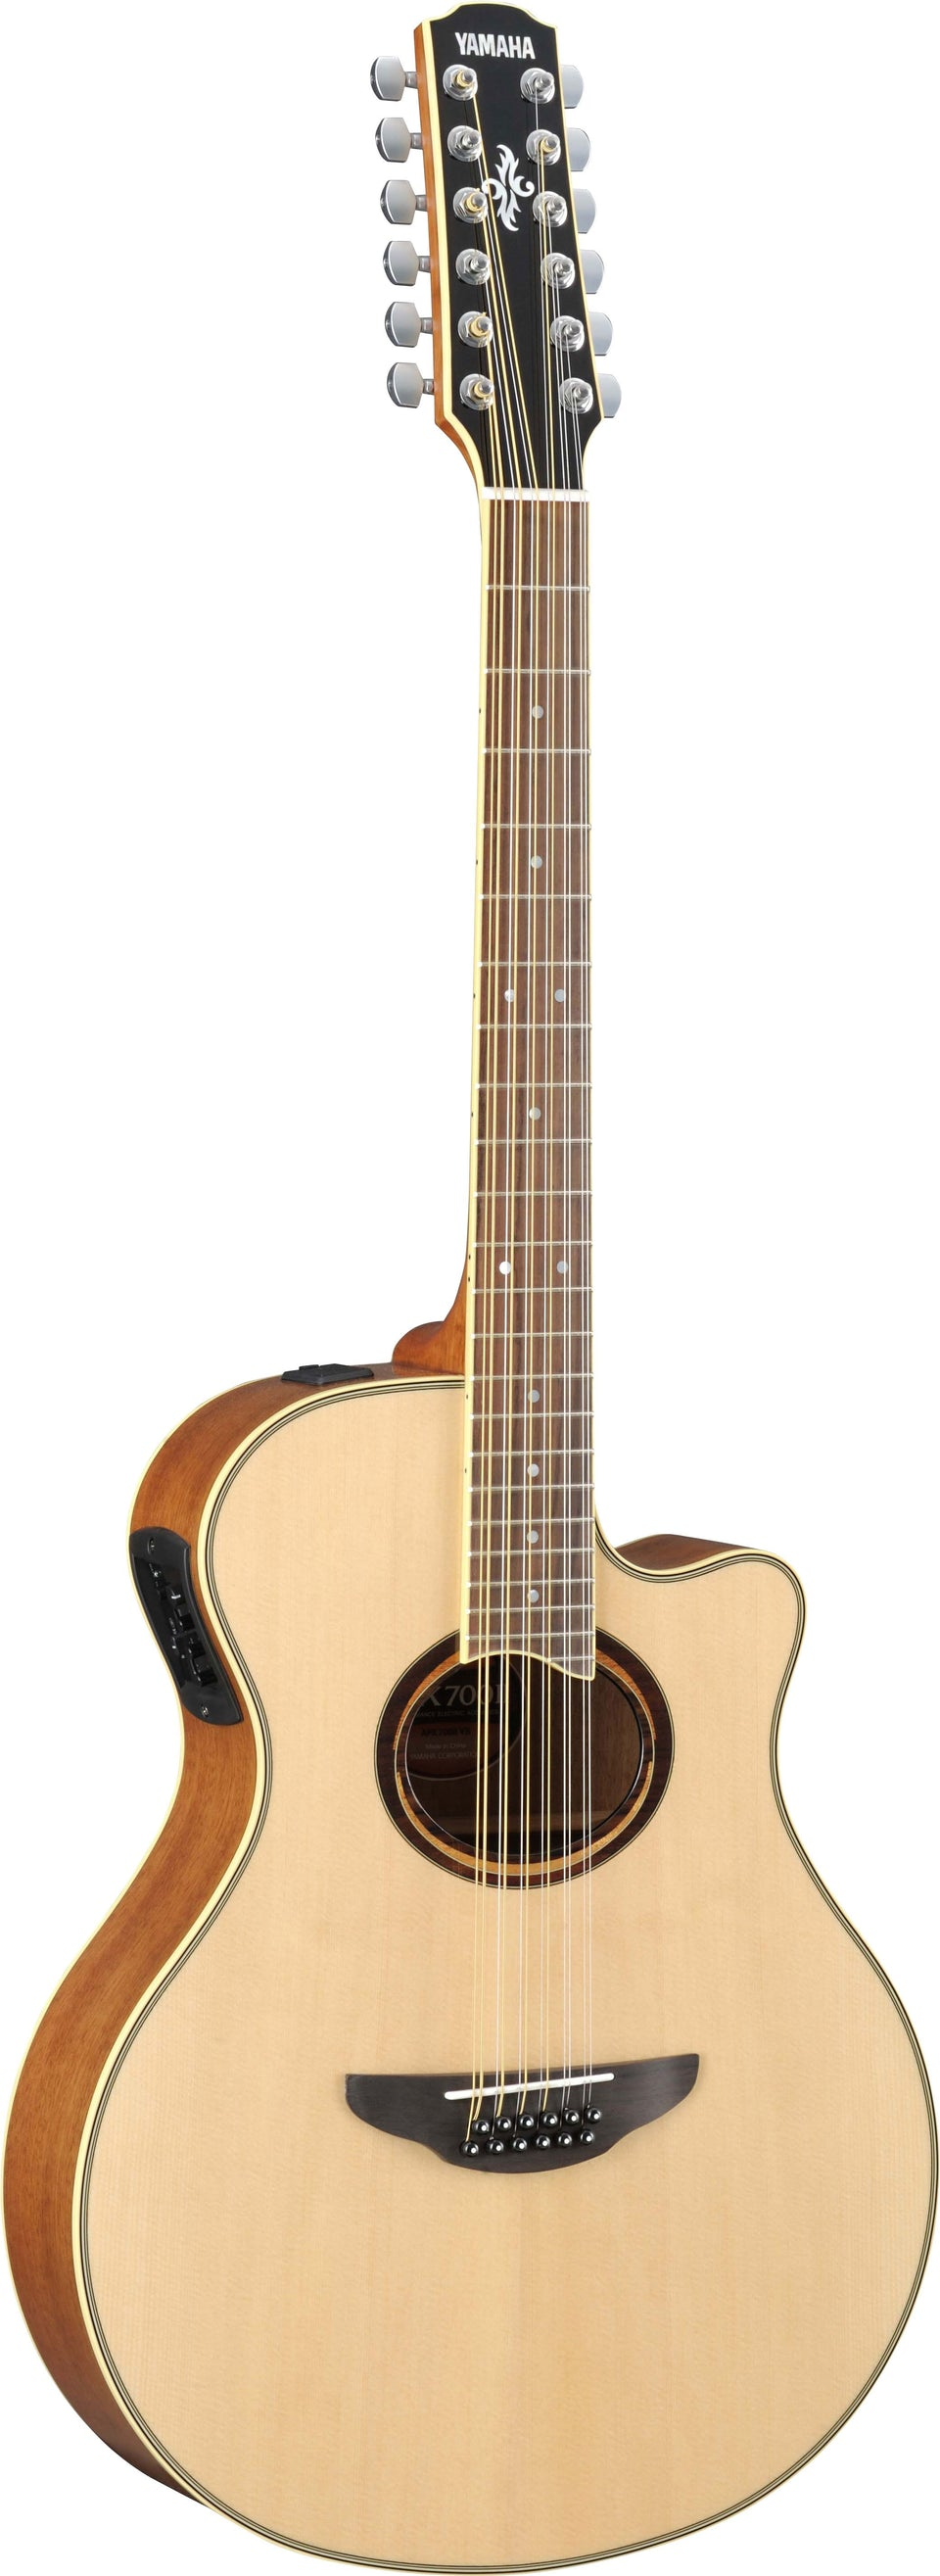 Yamaha APX700II-12 12-String Thinline Acoustic-Electric Guitar